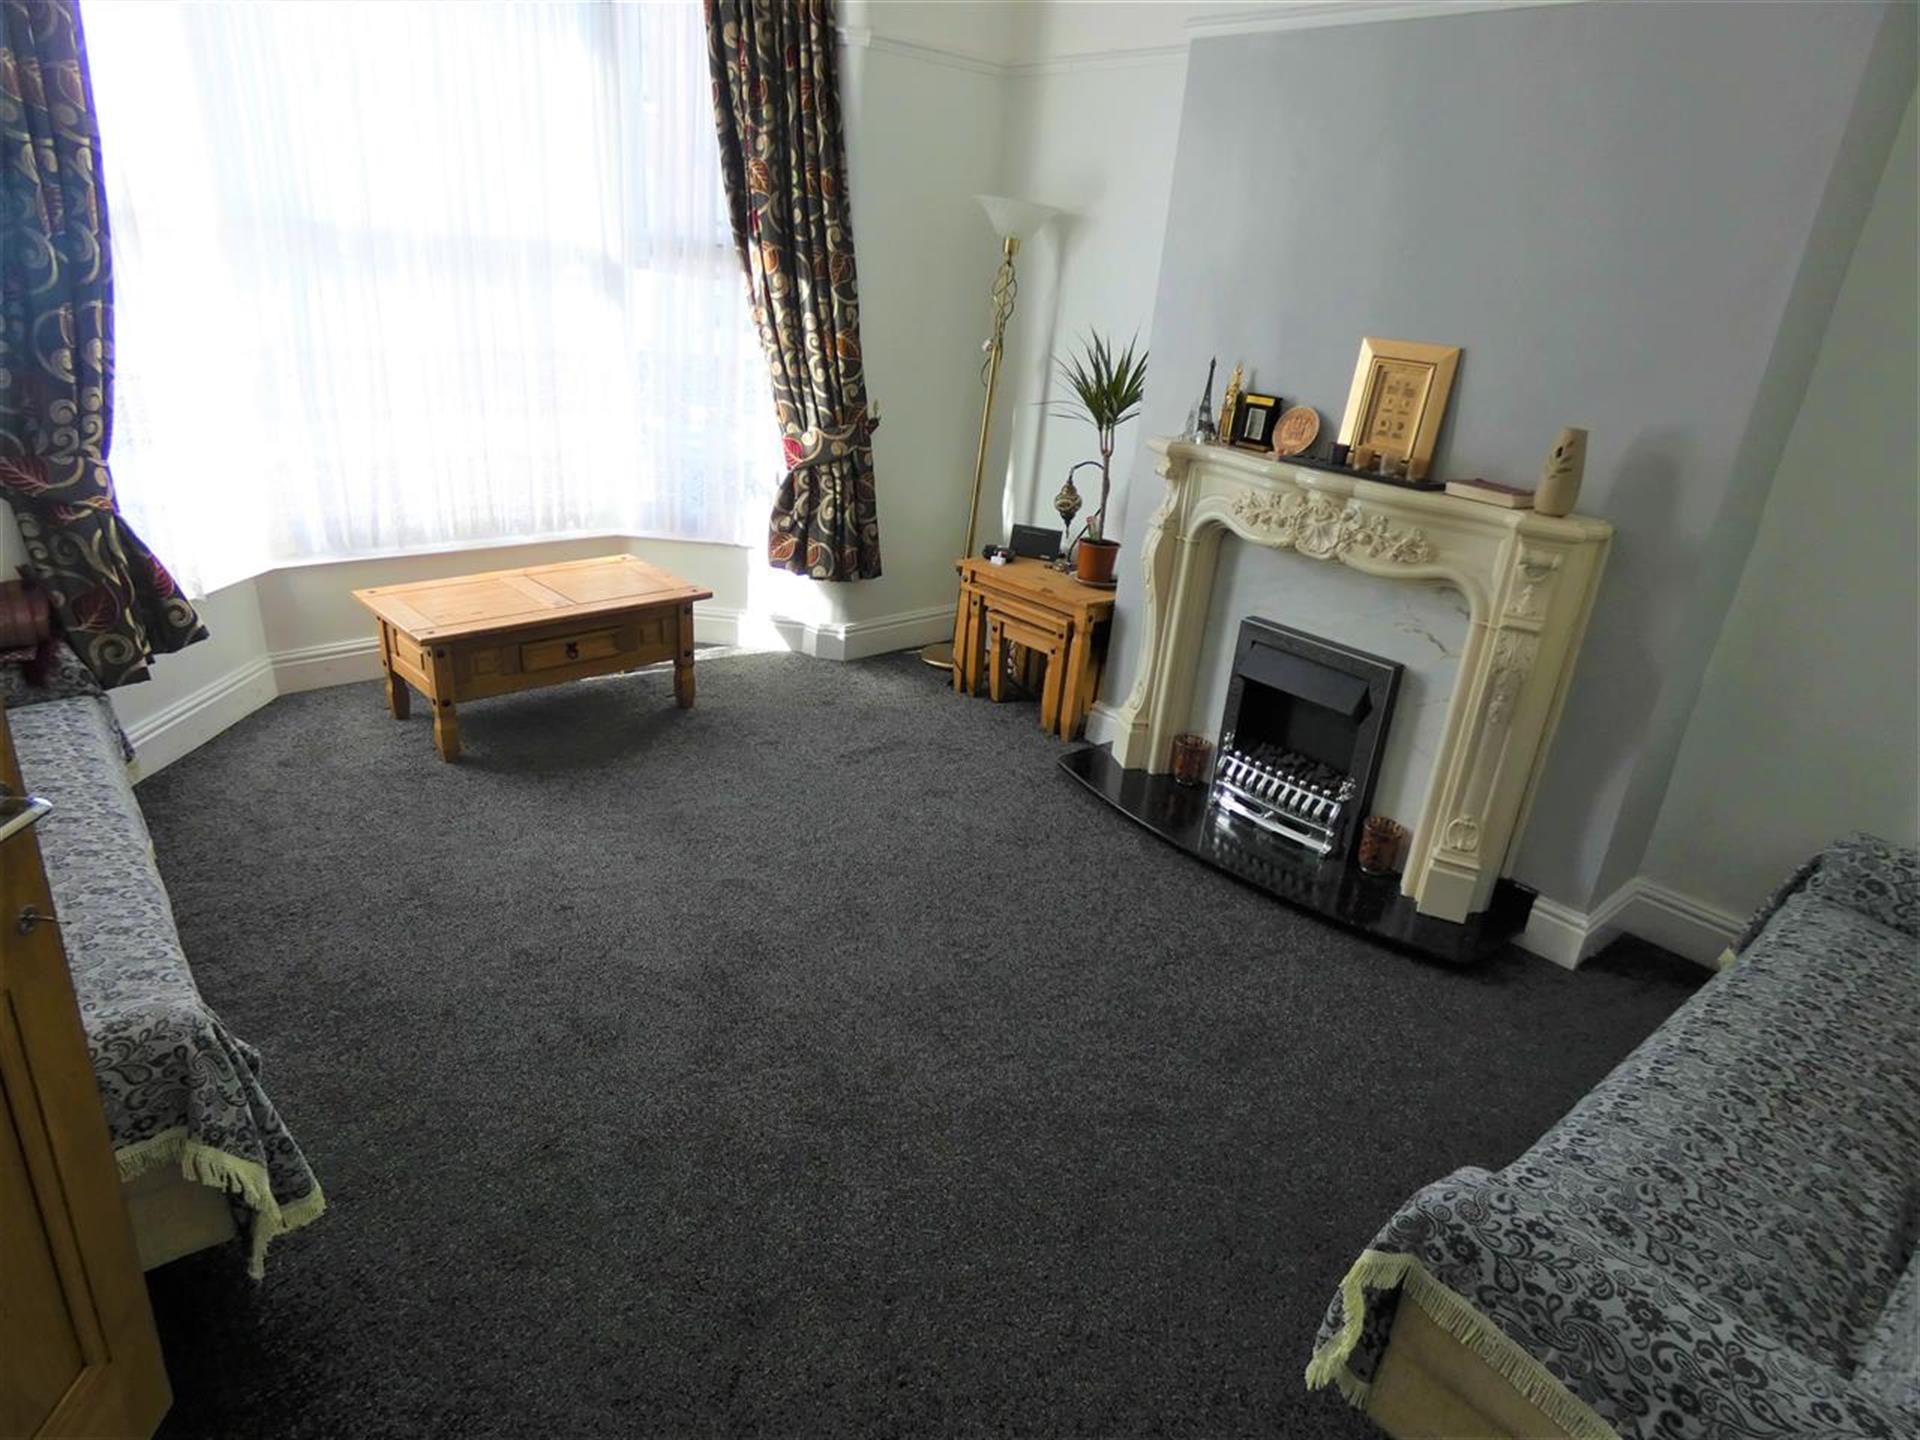 4 Bedroom Terraced House For Sale - Reception Room One